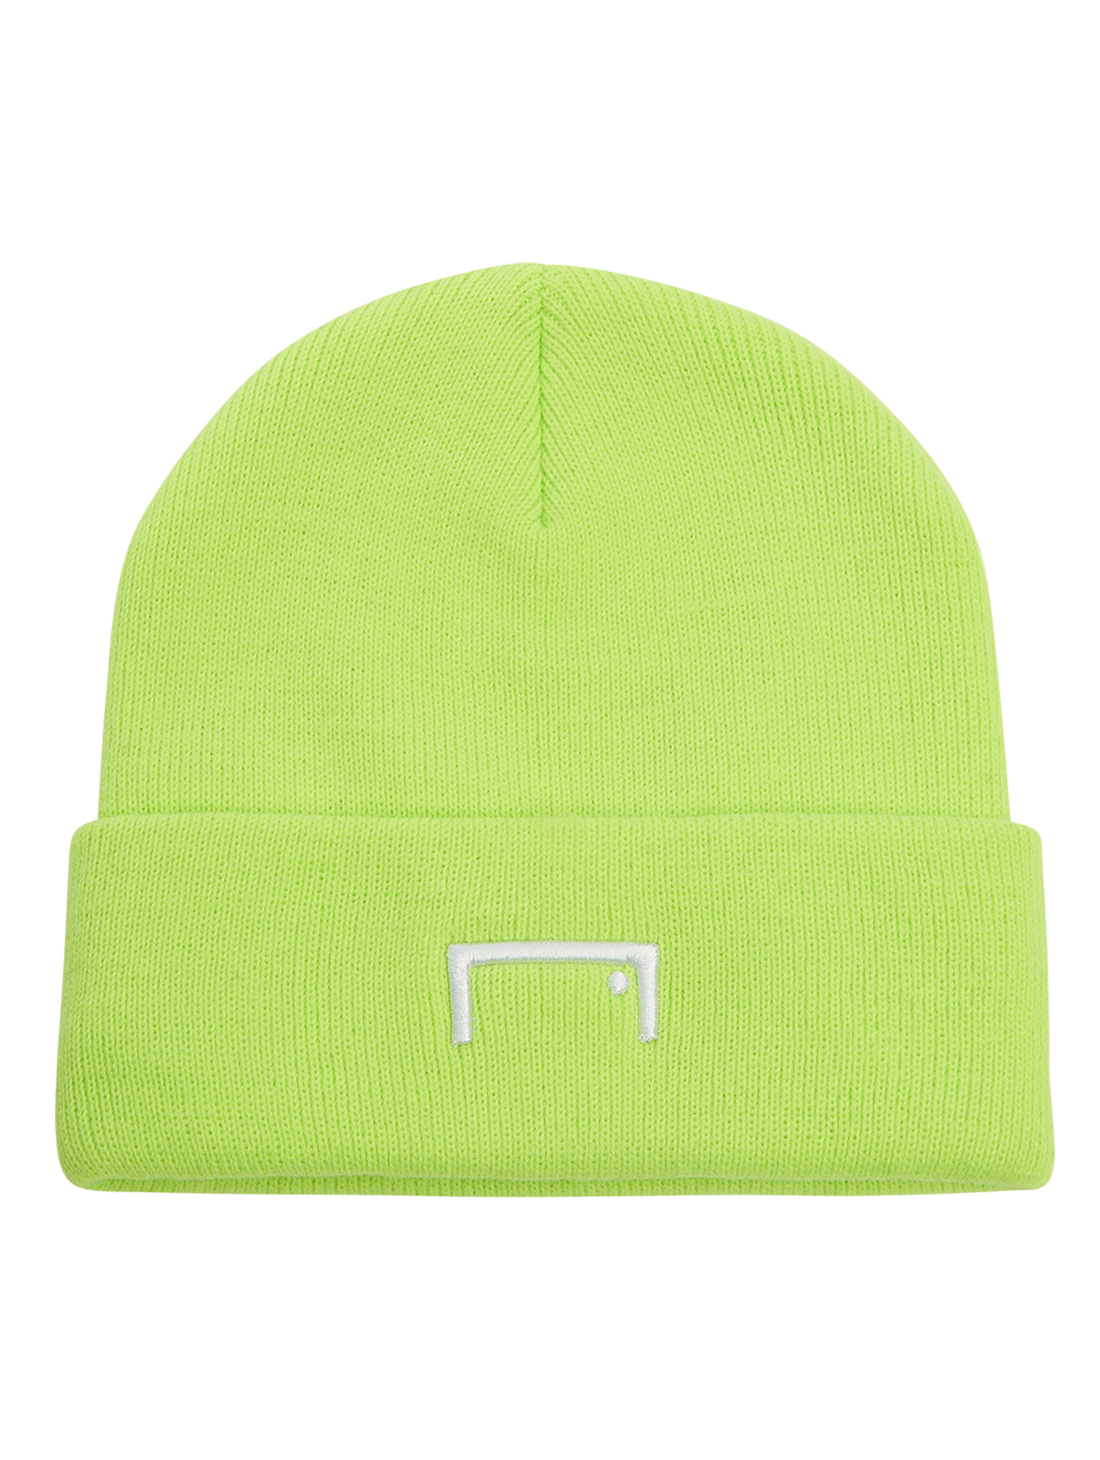 GOALSTUDIO RESPECT LABEL BEANIE - LIME